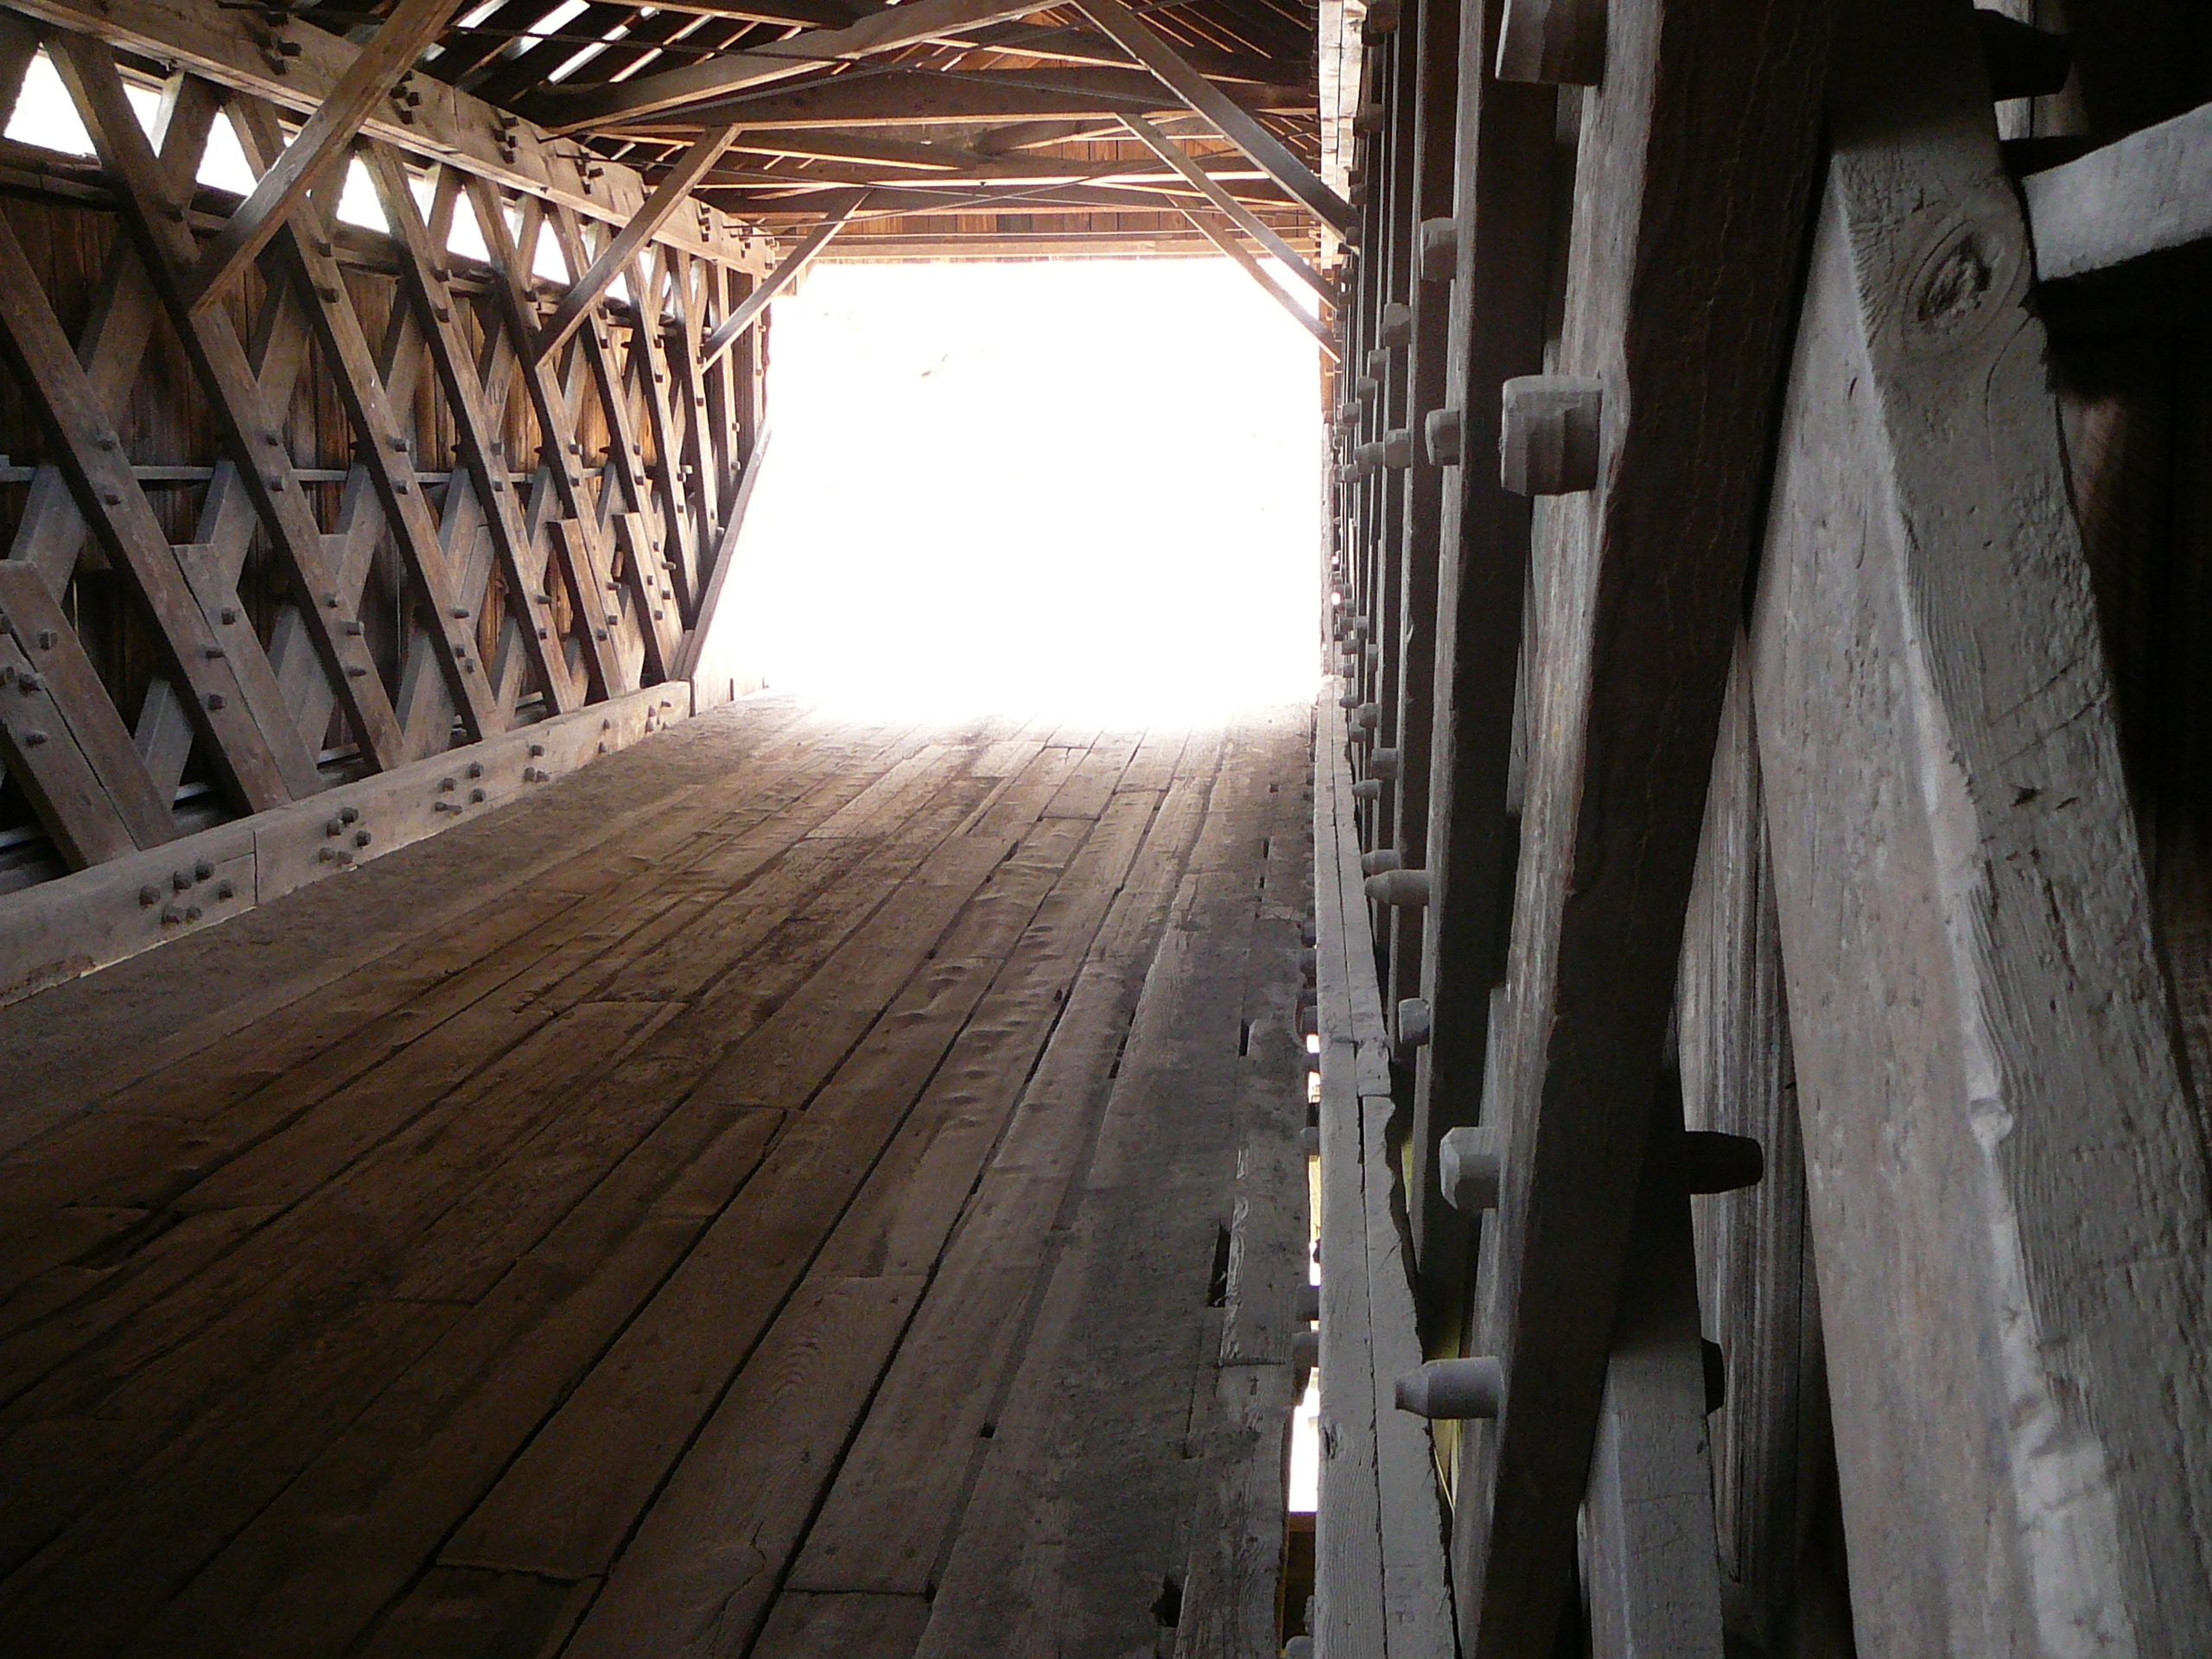 There is Light at the End of the…Covered Bridge